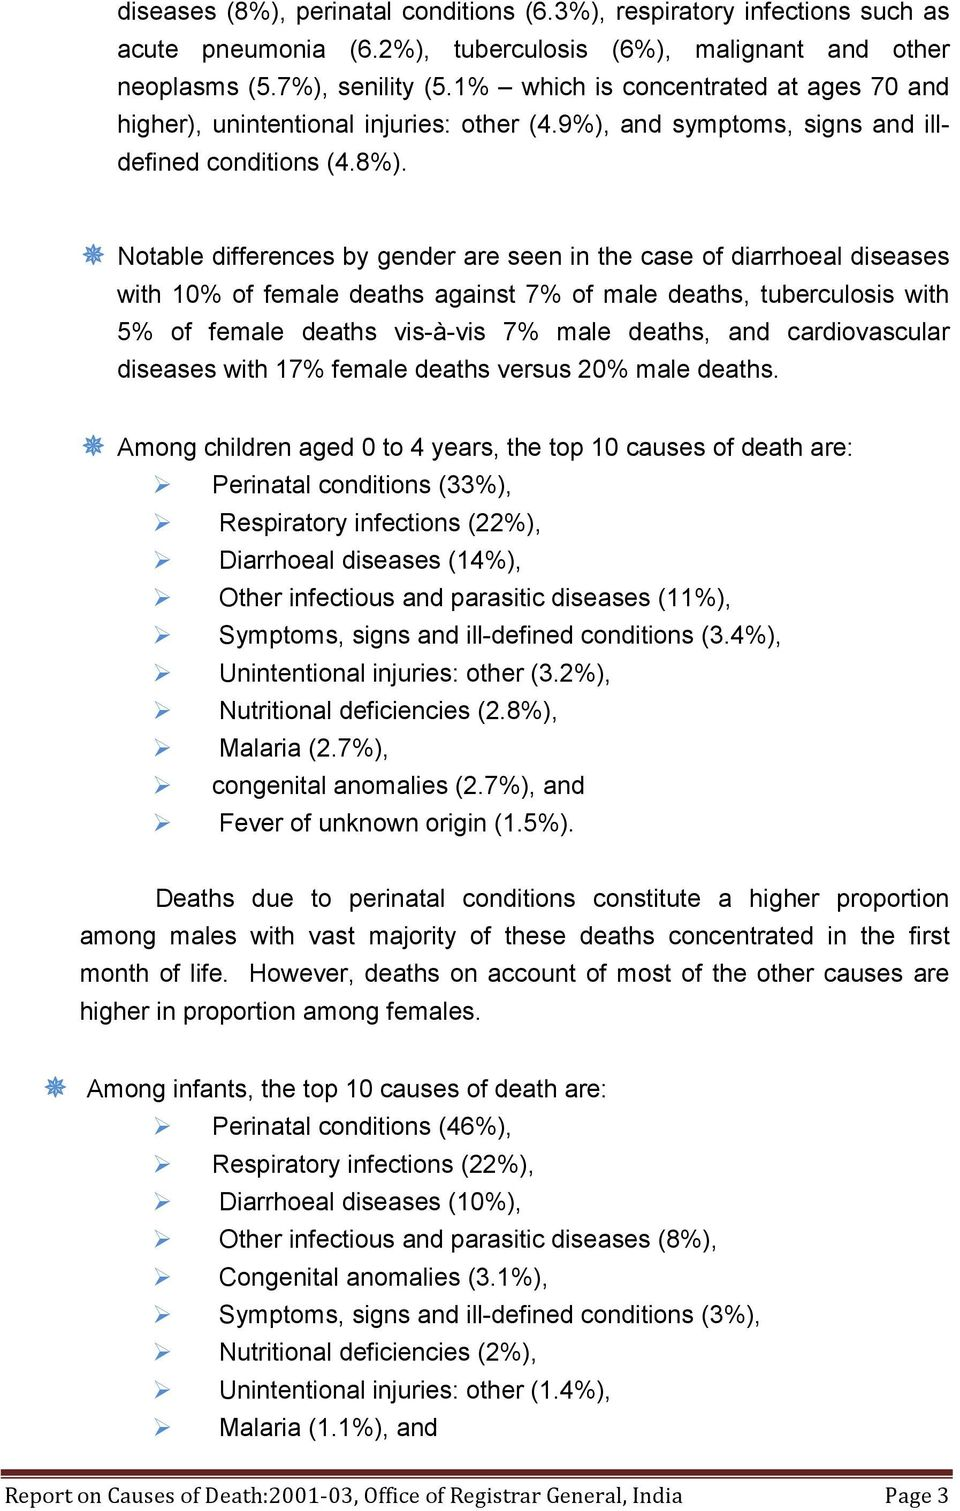 Notable differences by gender are seen in the case of diarrhoeal diseases with 10% of female deaths against 7% of male deaths, tuberculosis with 5% of female deaths vis-à-vis 7% male deaths, and